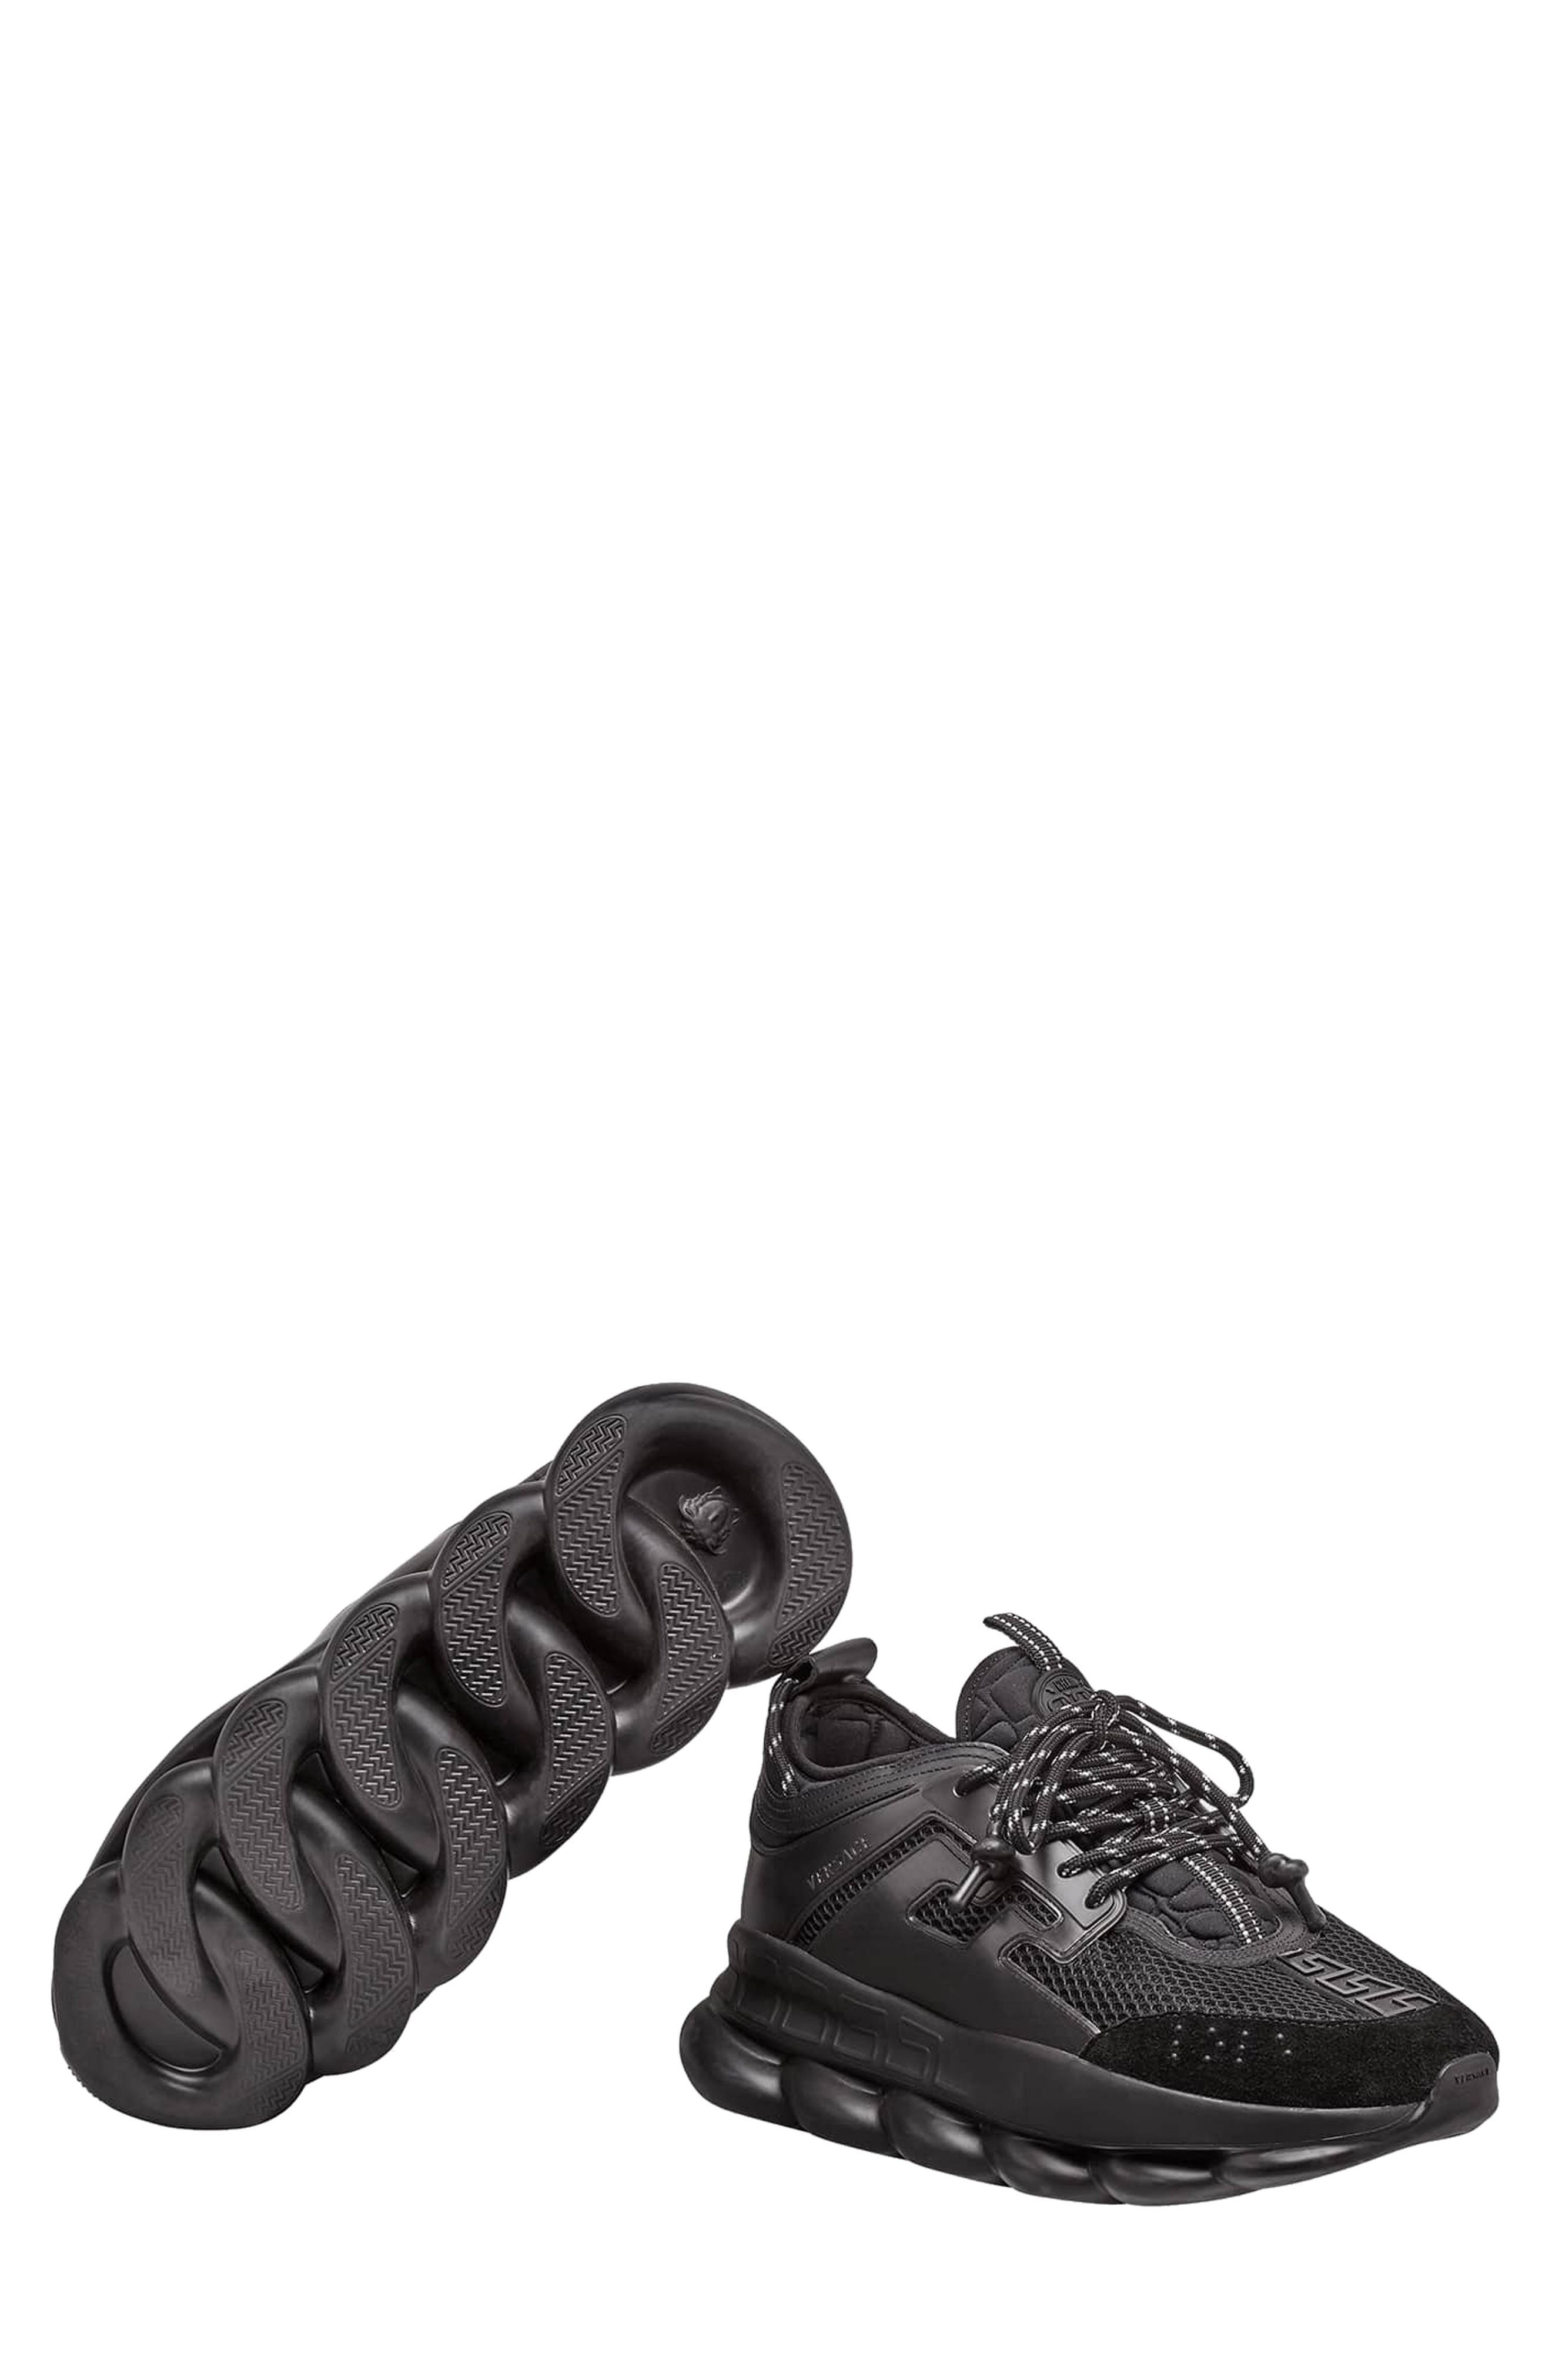 VERSACE FIRST LINE, Versace Chain Reaction Sneaker, Alternate thumbnail 6, color, NERO